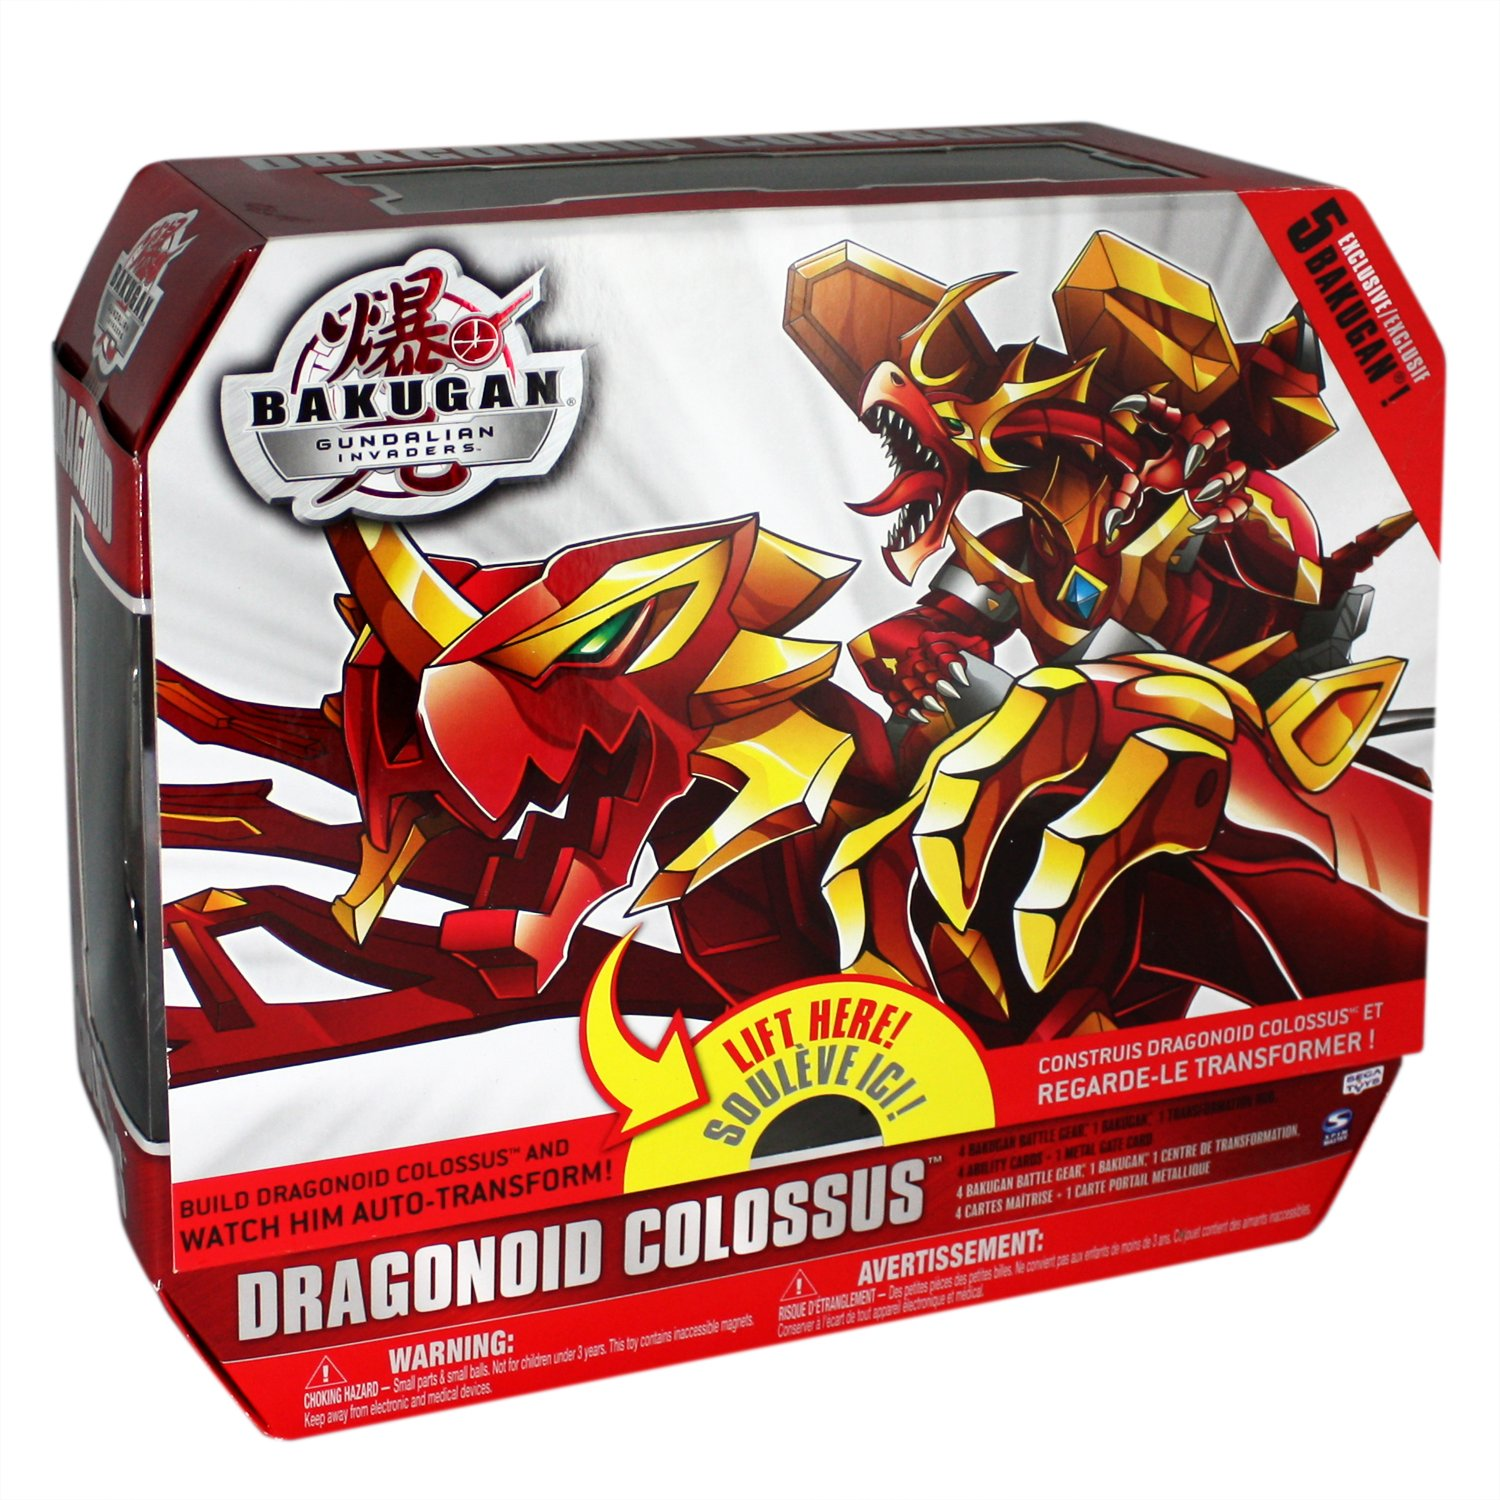 Bakugan Dragonoid Colossus